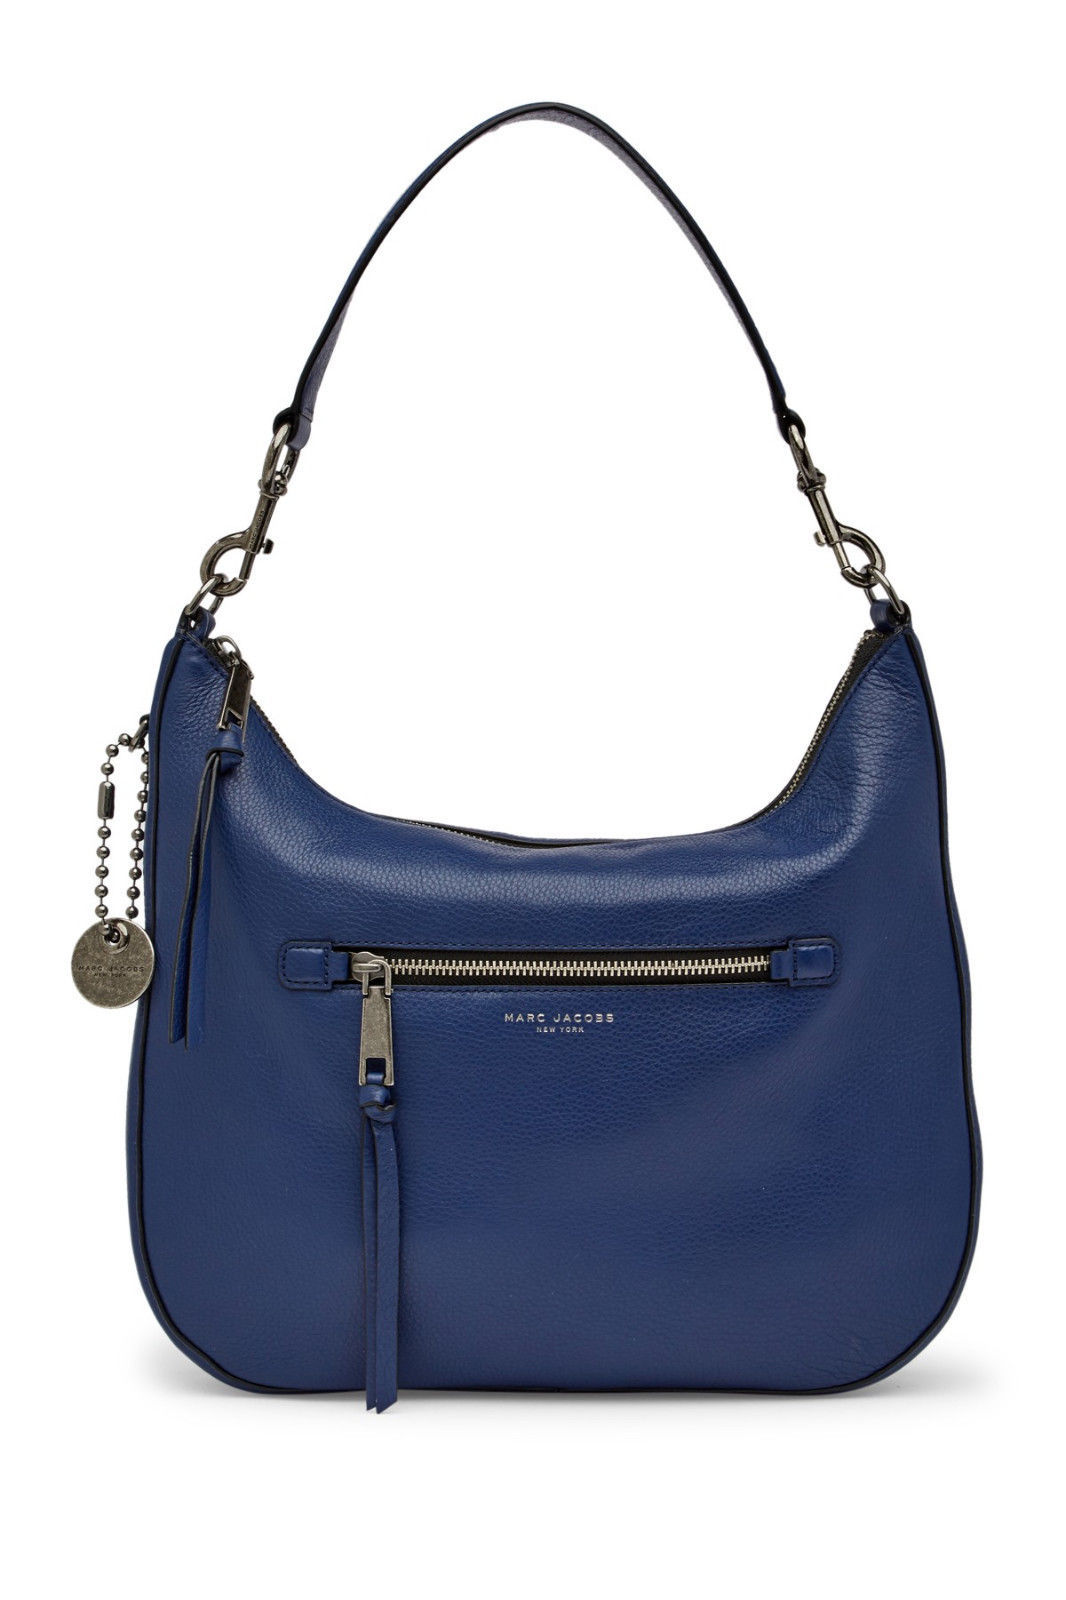 2cf65f8ce076 S l1600. S l1600. Previous. Marc Jacobs Recruit Leather Hobo Bag Purse Dark  Blue New NWT. Marc Jacobs Recruit ...